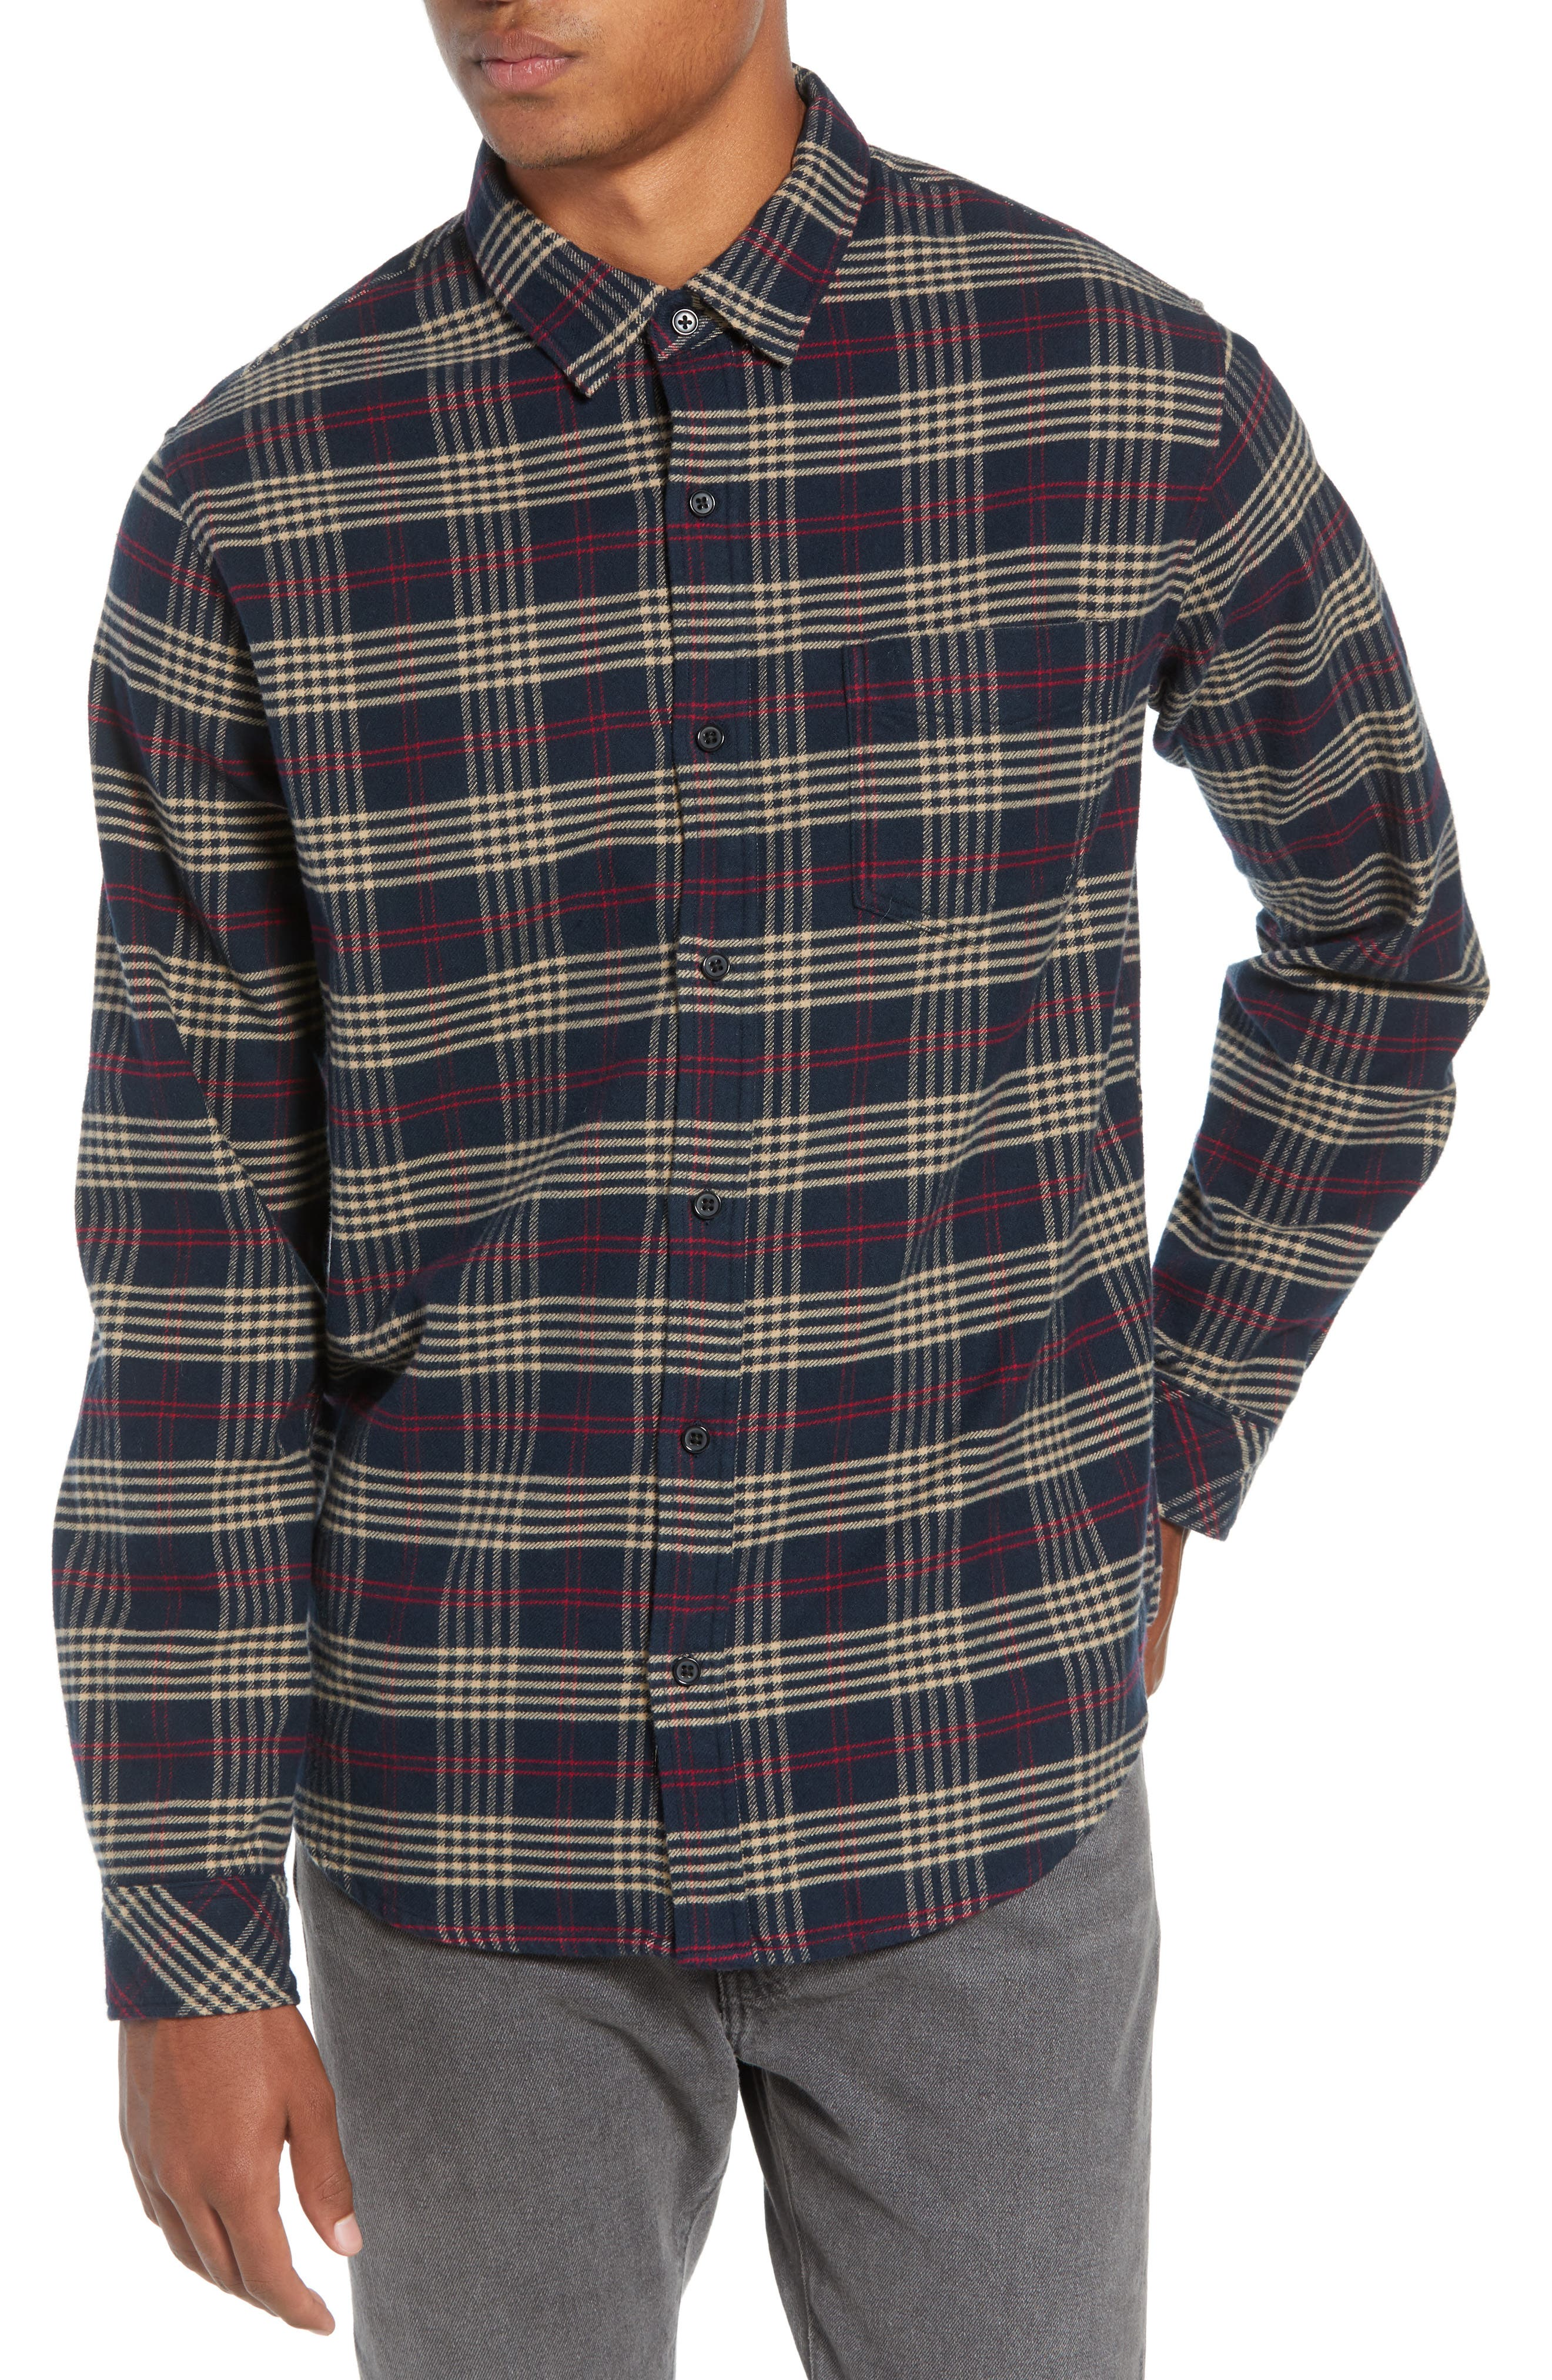 Forrest Regular Fit Plaid Flannel Sport Shirt,                             Main thumbnail 1, color,                             NAVY/RED/ELM